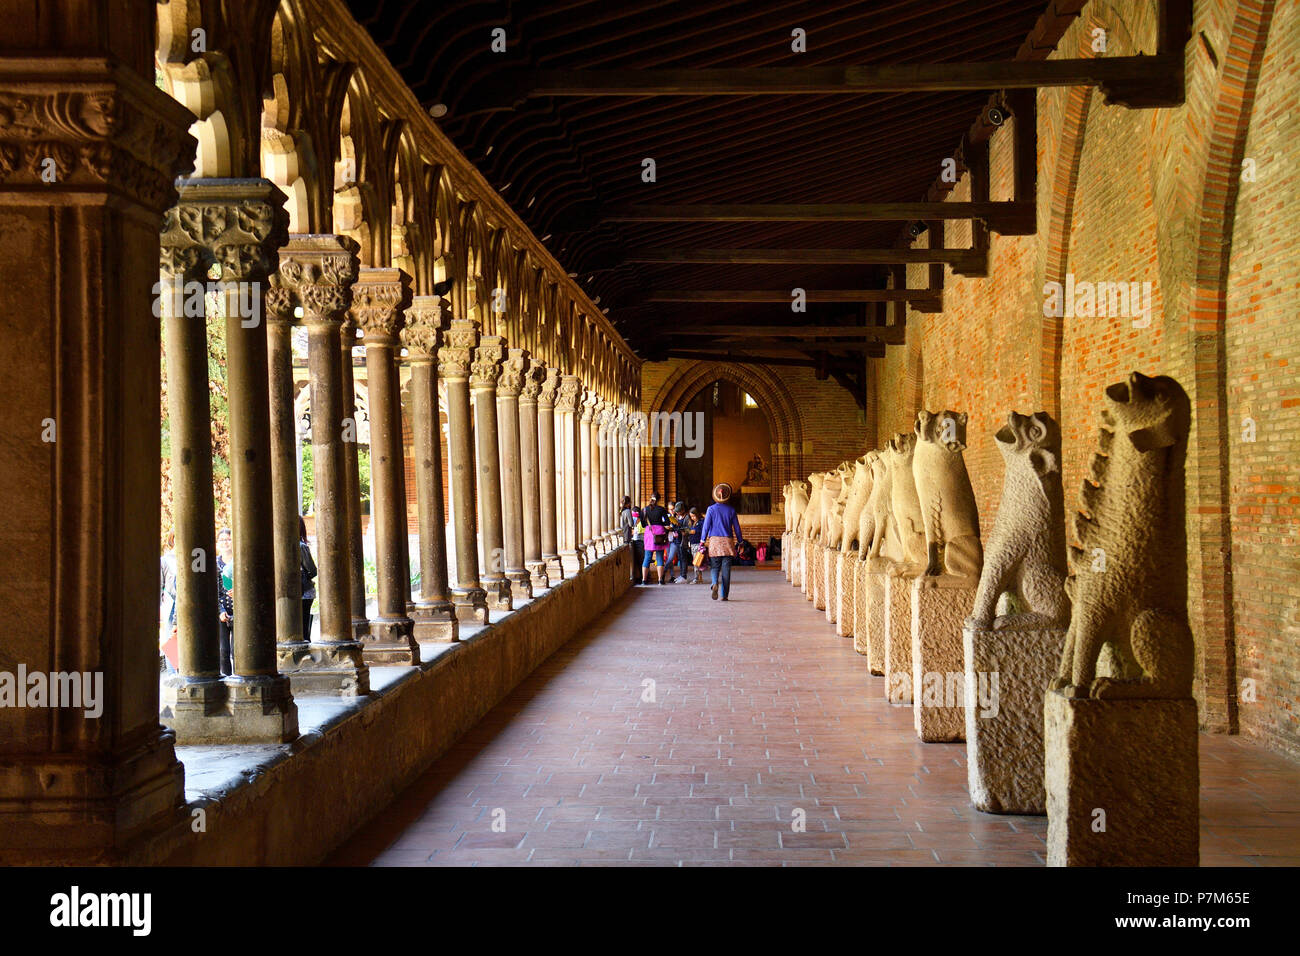 France, Haute Garonne, Toulouse, Augustins museum in the former Augustins convent, the cloister, Gargoyles from the Cordeliers Monastery, 13th century - Stock Image